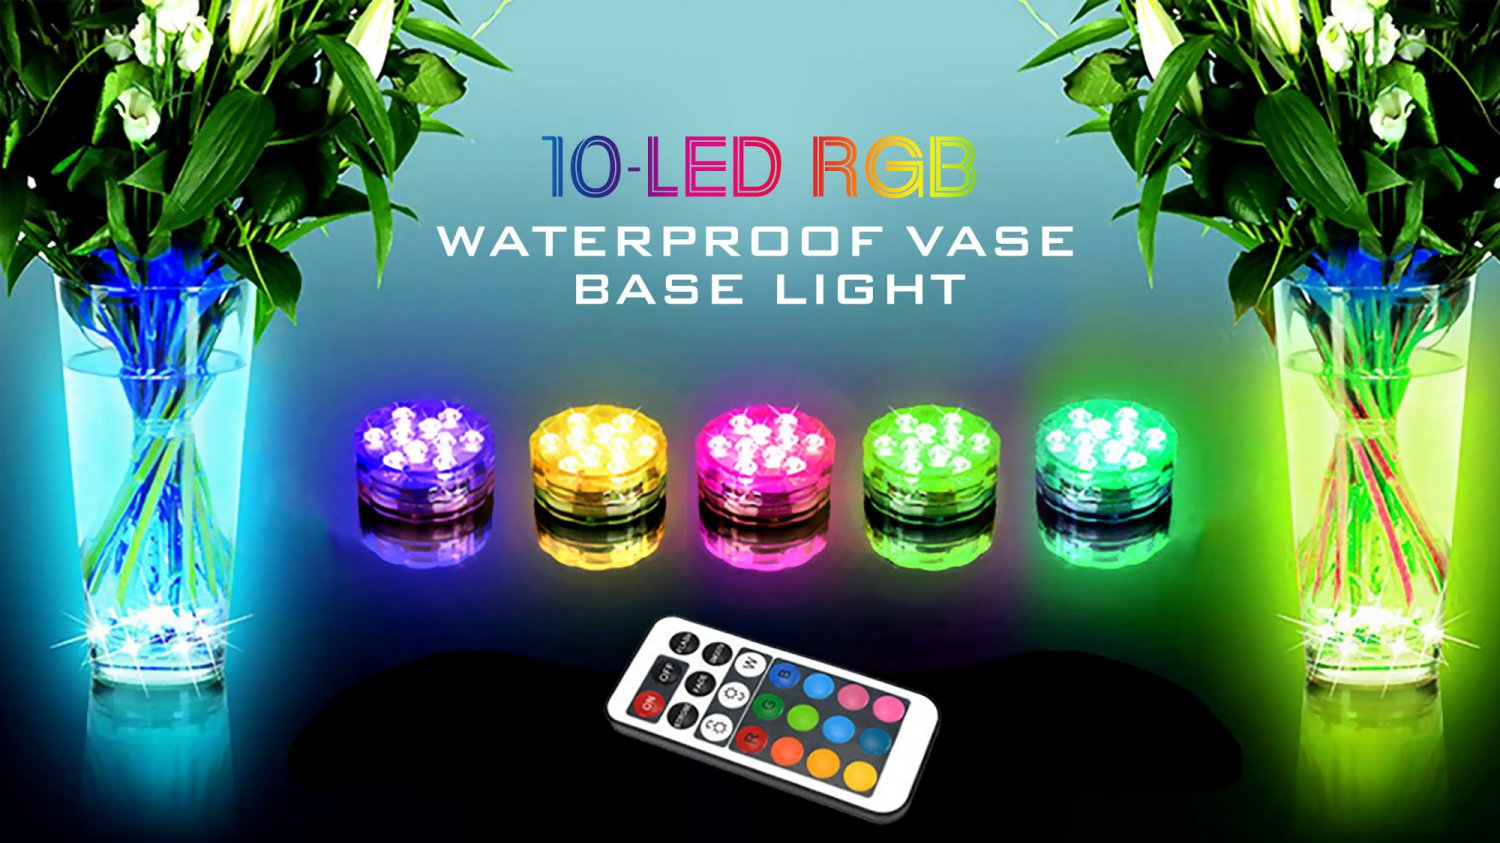 10-LED Colorful Waterproof Vase Base Light Christmas Party Decoration Lamp w Remote Control